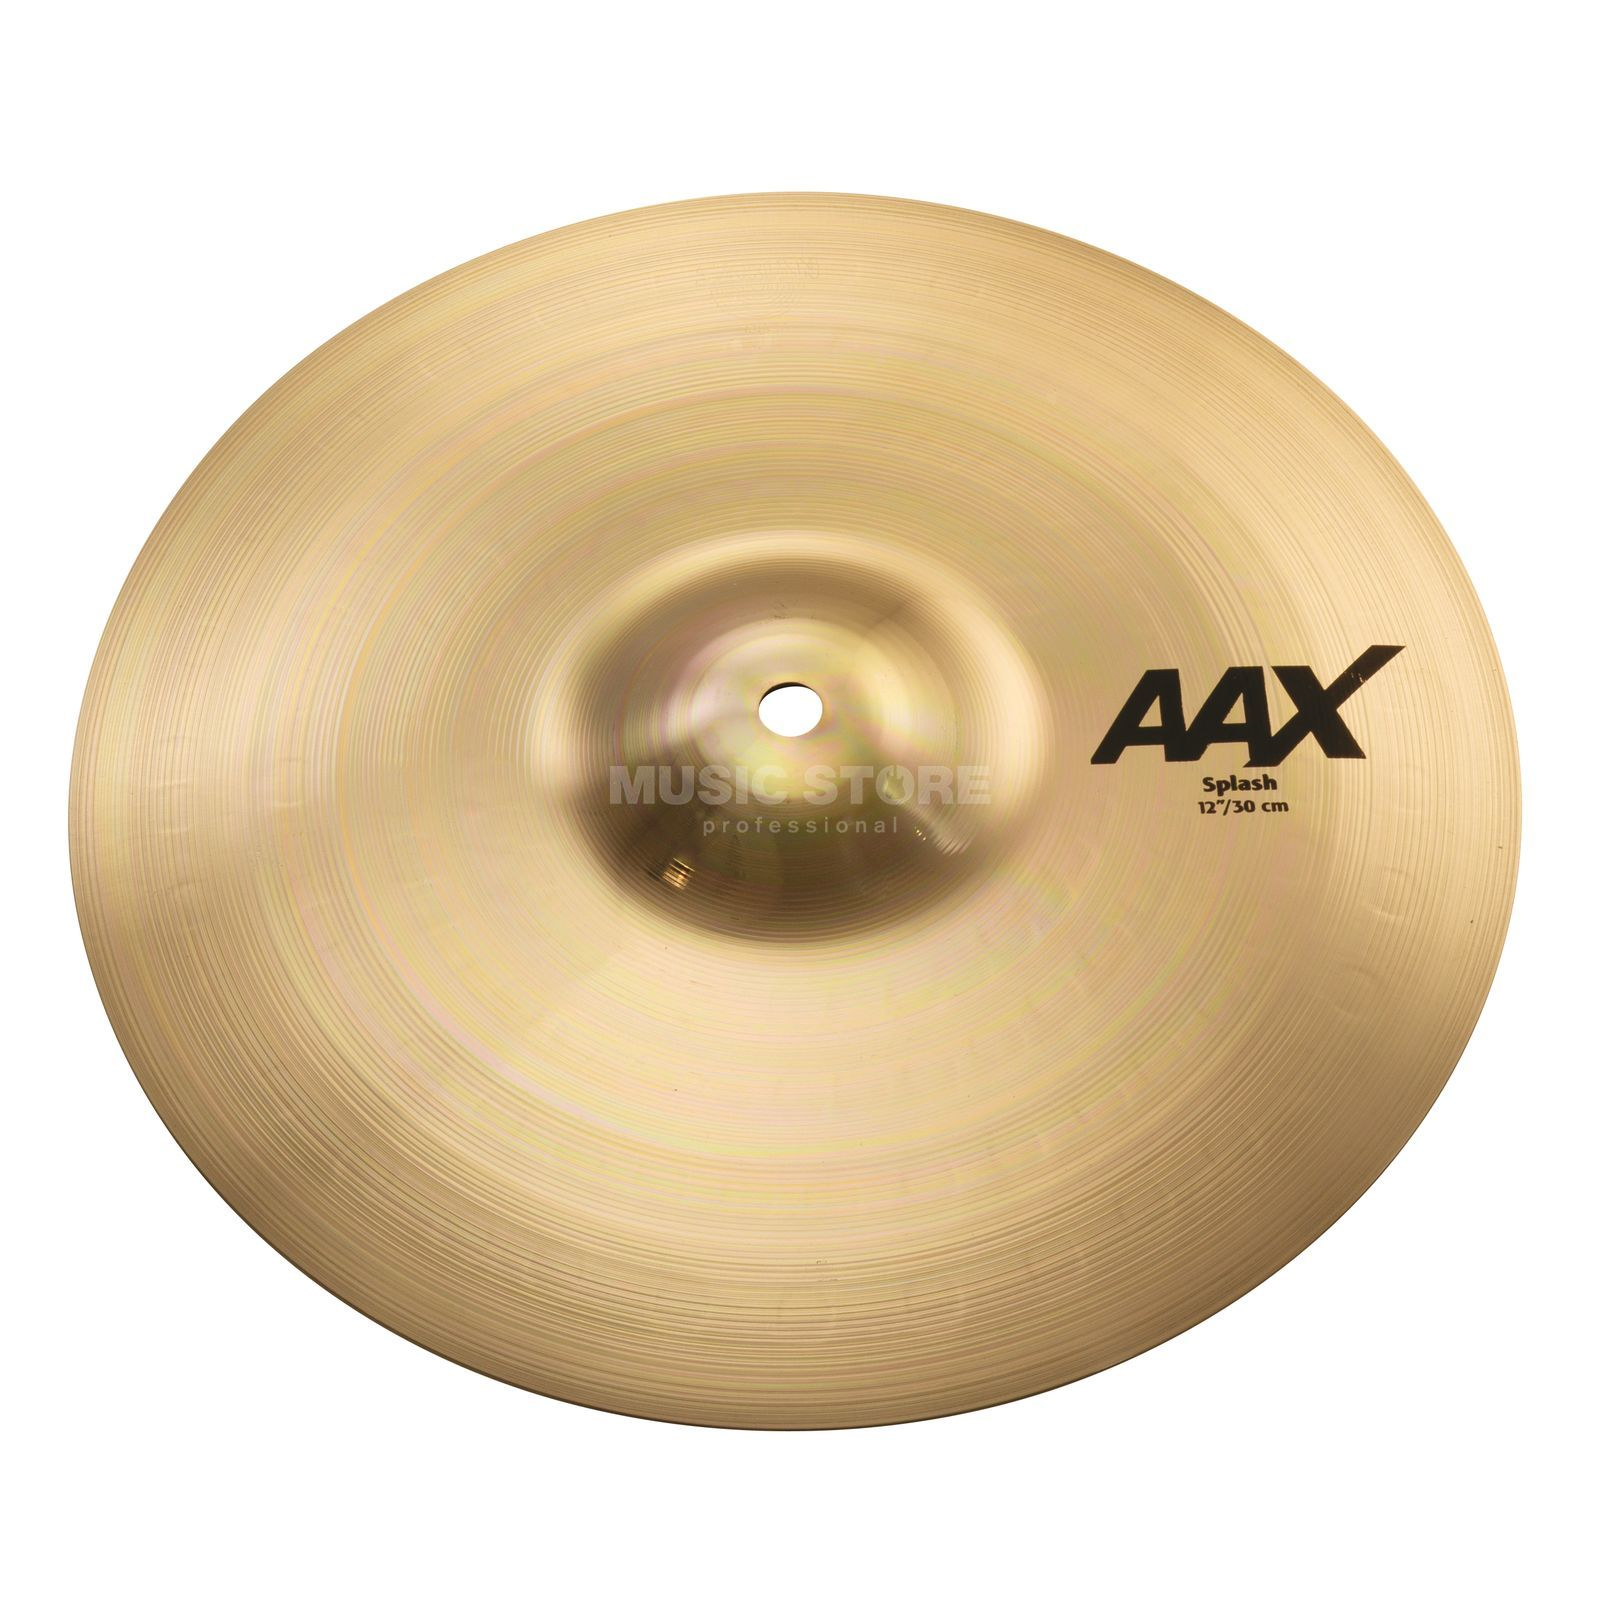 "Sabian AAX Splash 12"" Brilliant Finish Изображение товара"